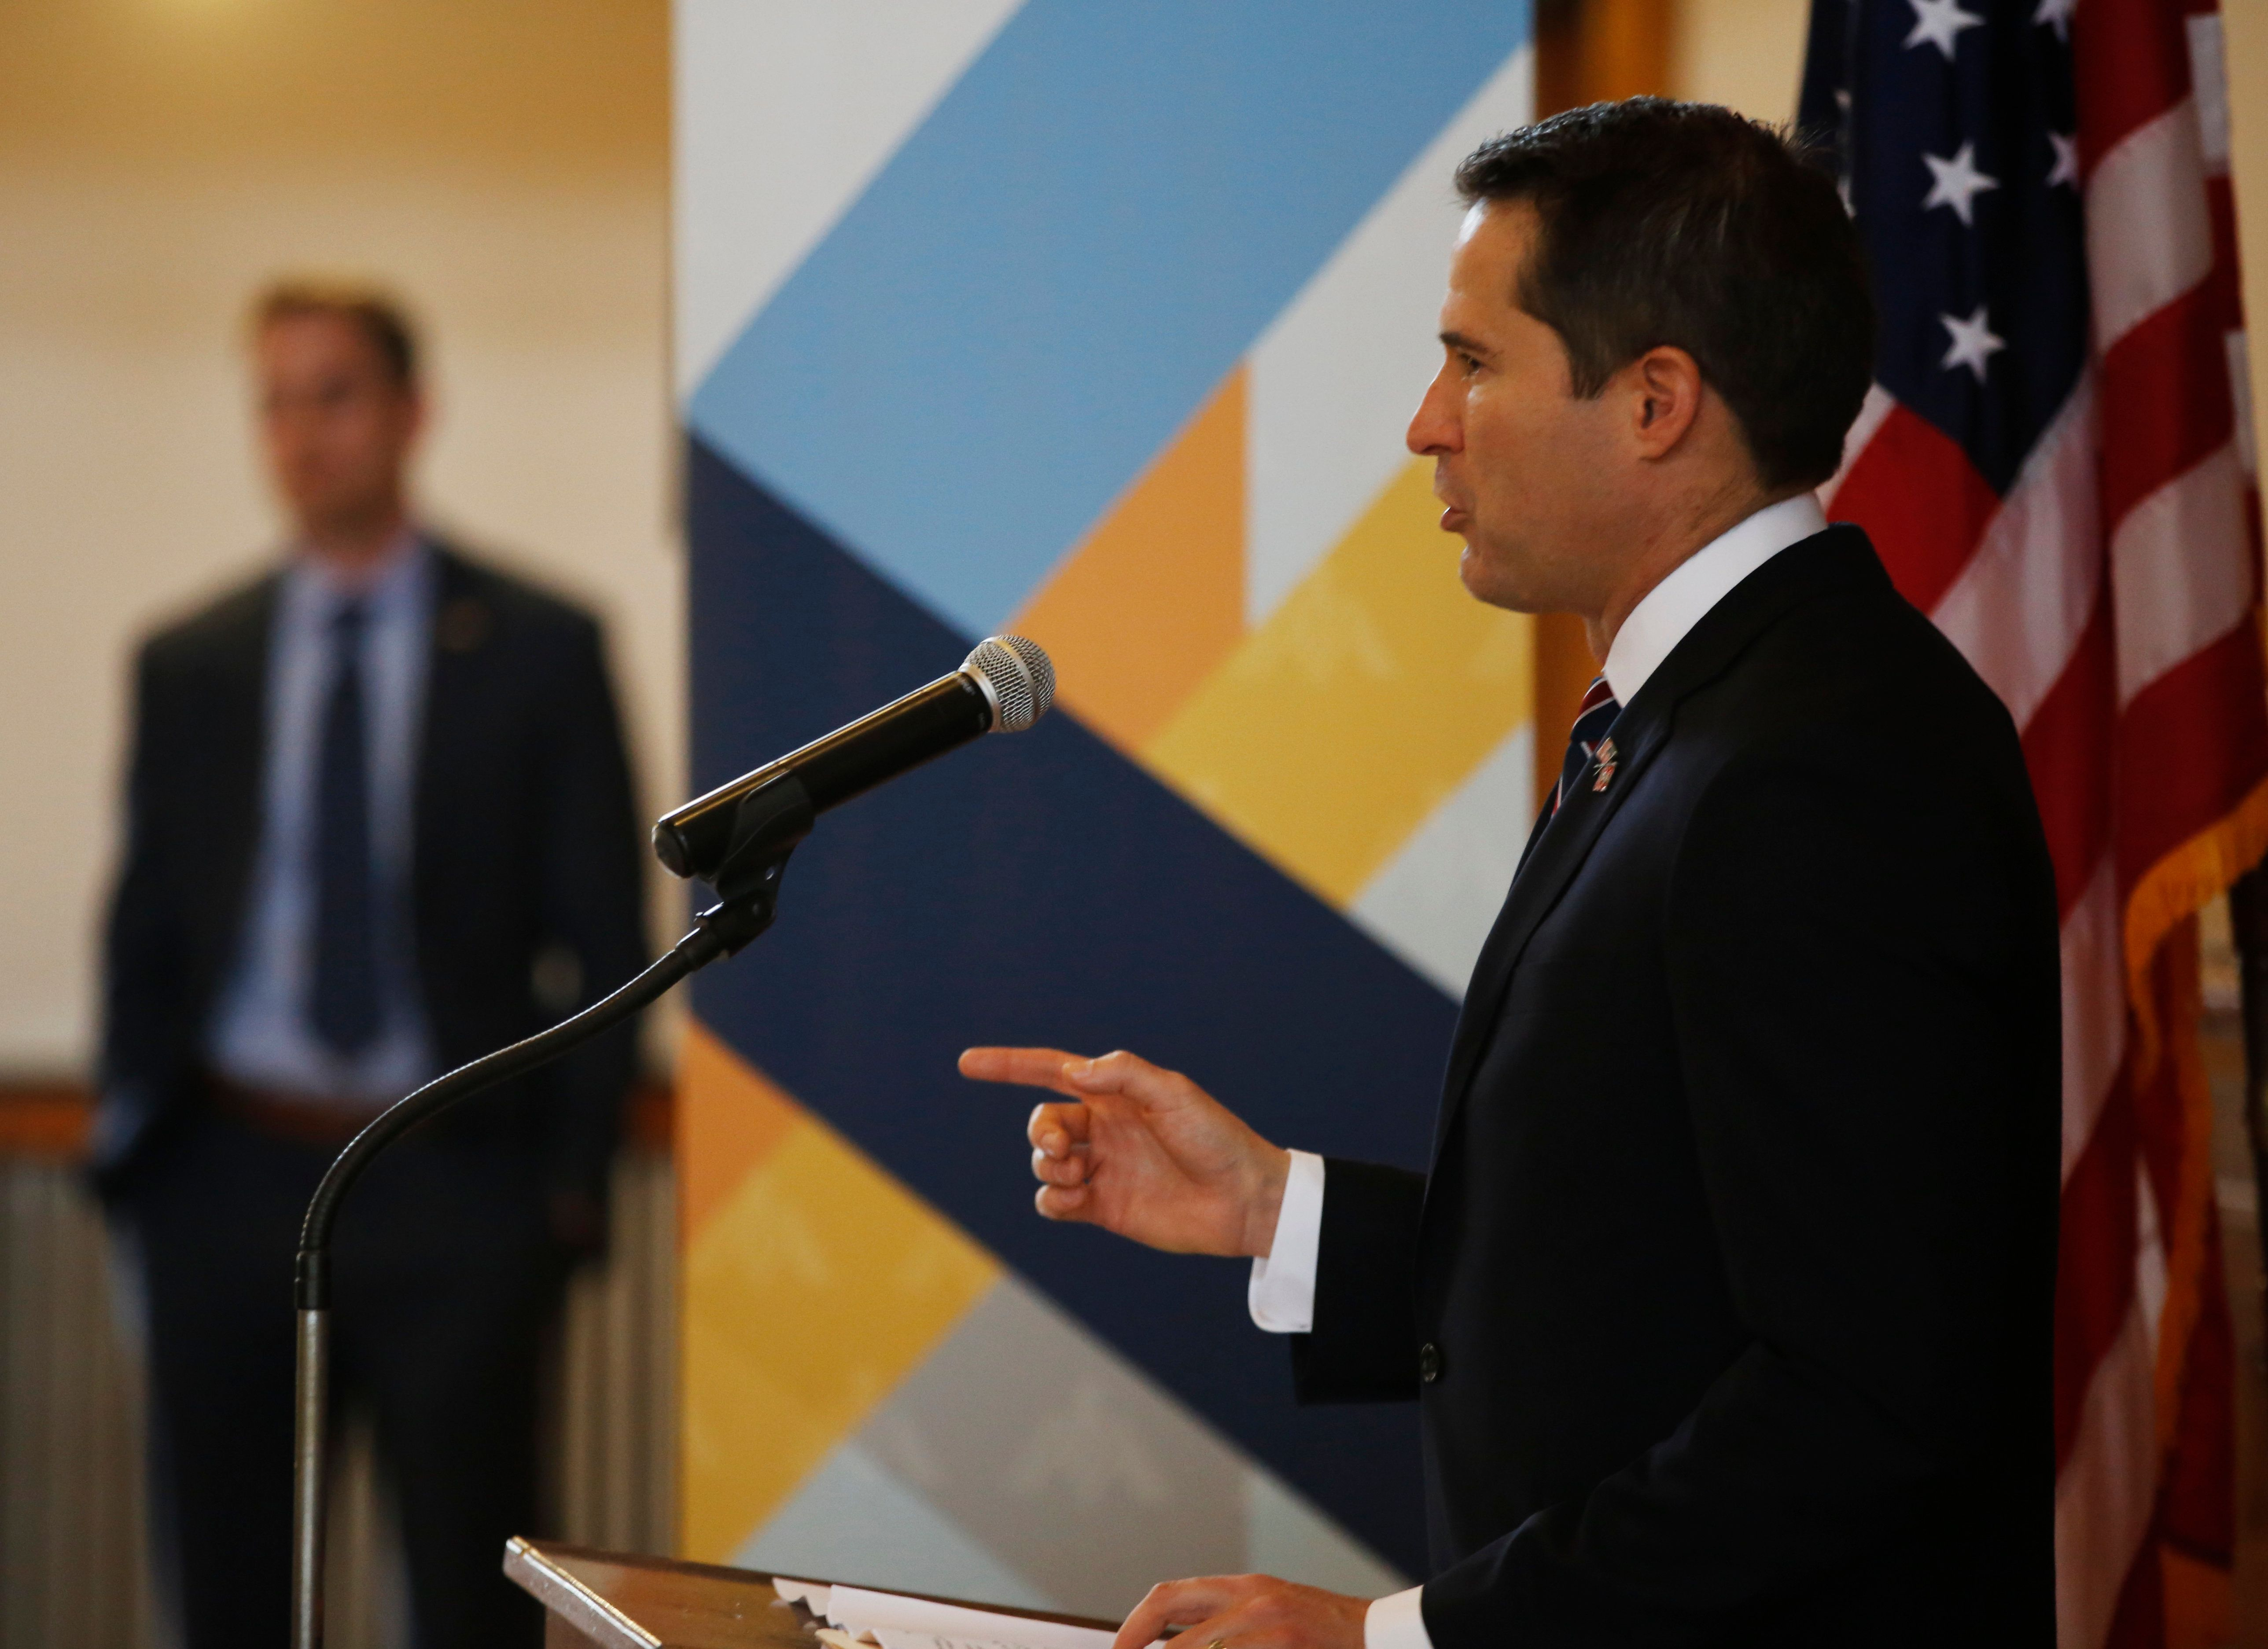 MARBLEHEAD, MA - NOVEMBER 10: U.S. Congressman Seth Moulton speaks to a crowd of veterans during the annual Veterans Town Hall in Marblehead, MA on Nov. 10, 2018. Veterans gathered at historic Abbot Hall Saturday morning to reflect on their military service, its repercussions across their lives, and the values they fought to defend - ideals that some said the nation appears to have abandoned in these fractious times. The fourth annual Veterans Town Hall hosted by US Congressman Seth Moulton, which grew out of an idea from the writer Sebastian Junger, a Belmont native, drew about 200 former service members, their families, and supporters. (Photo by Michael Swensen for The Boston Globe via Getty Images)